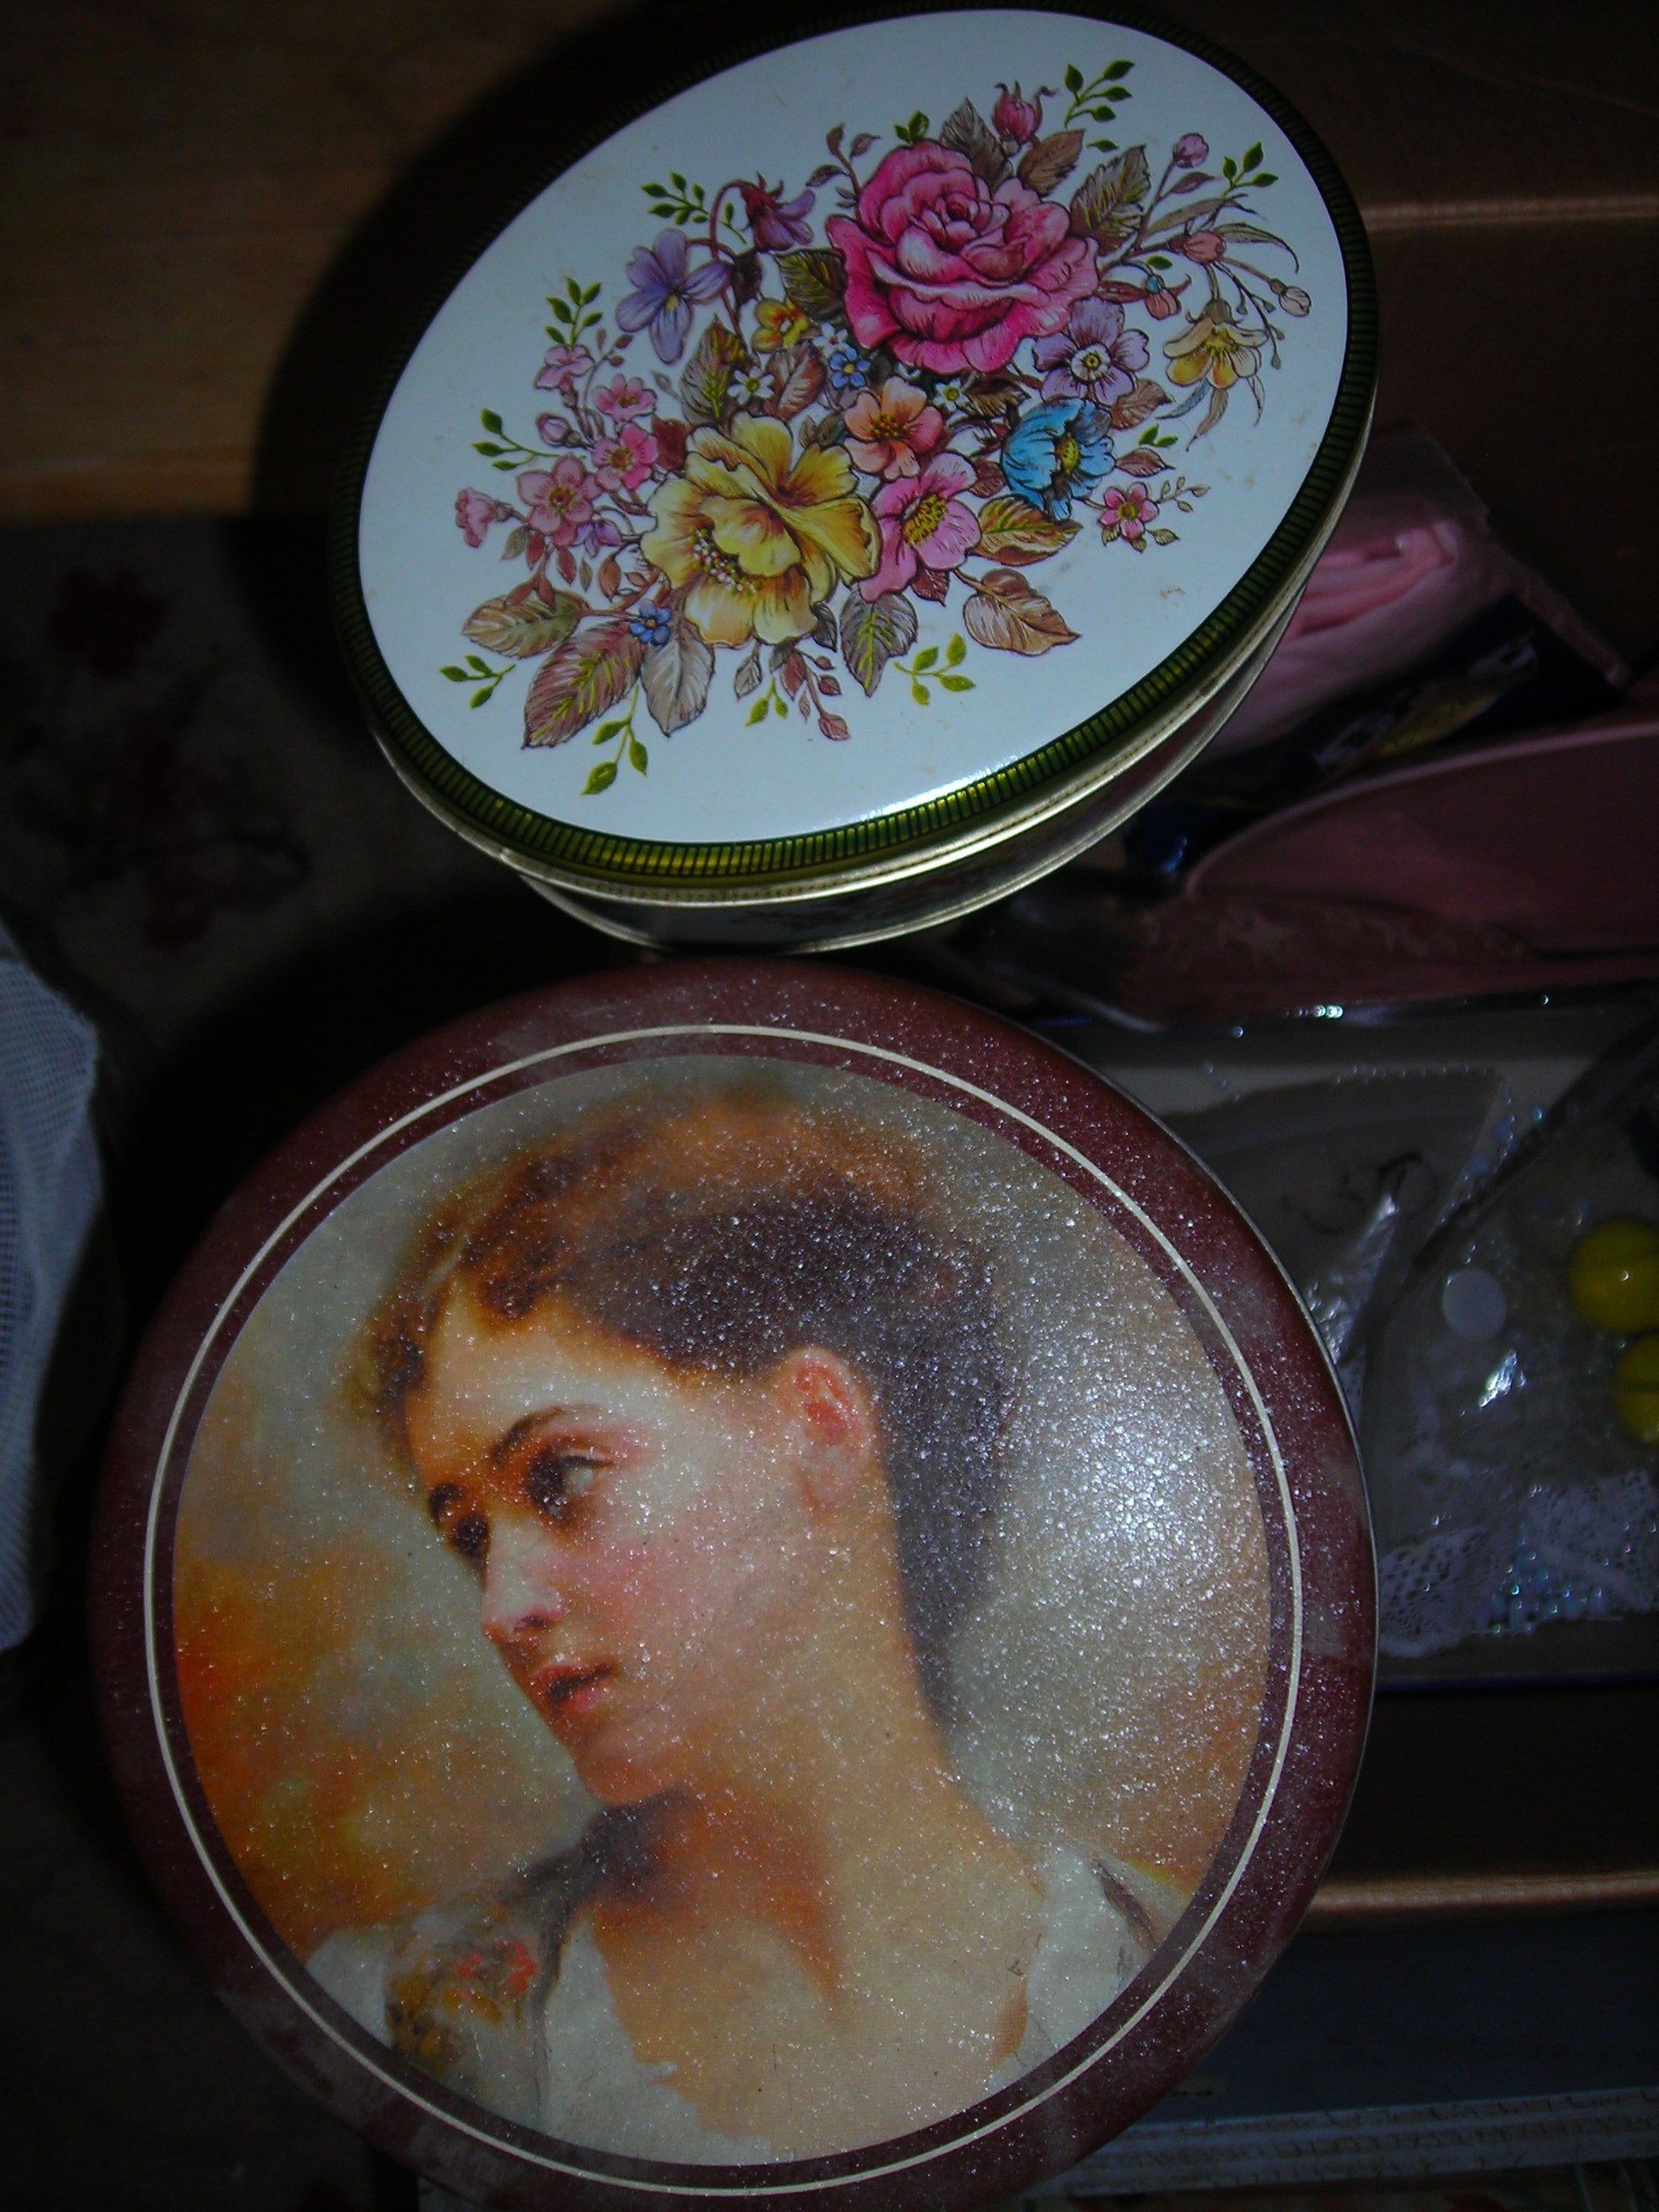 great little tins from the church rummage sale. esp love the french girl